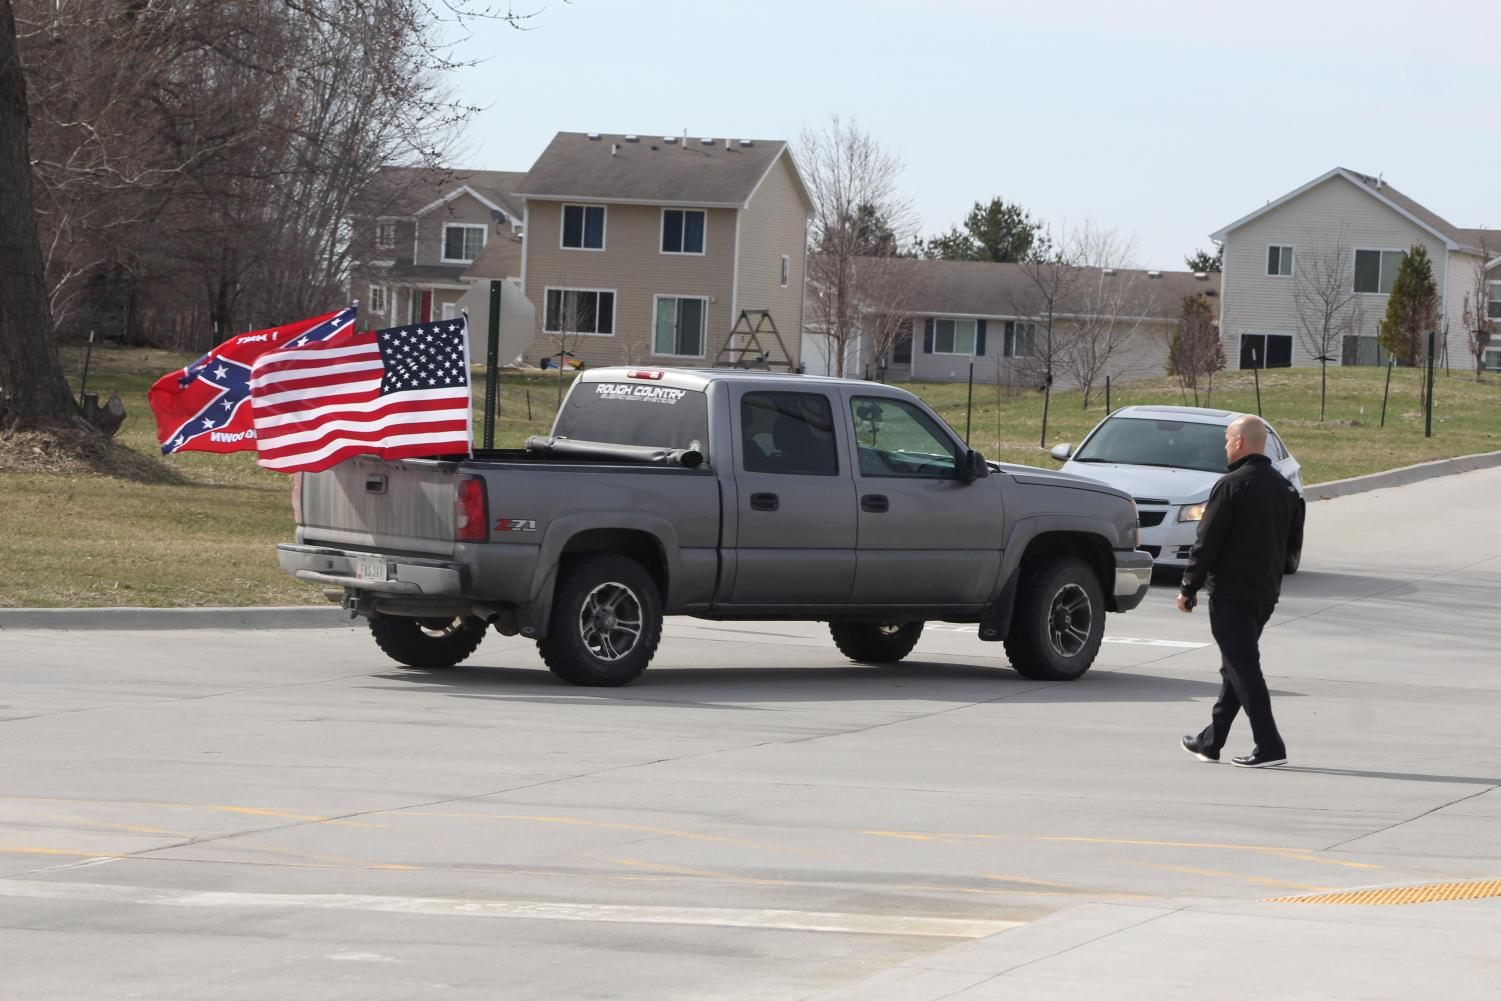 Principal Woods approaches a vehicle flying a confederate flag in the parking lot. Woods approached the vehicle during the April 20 walkout.